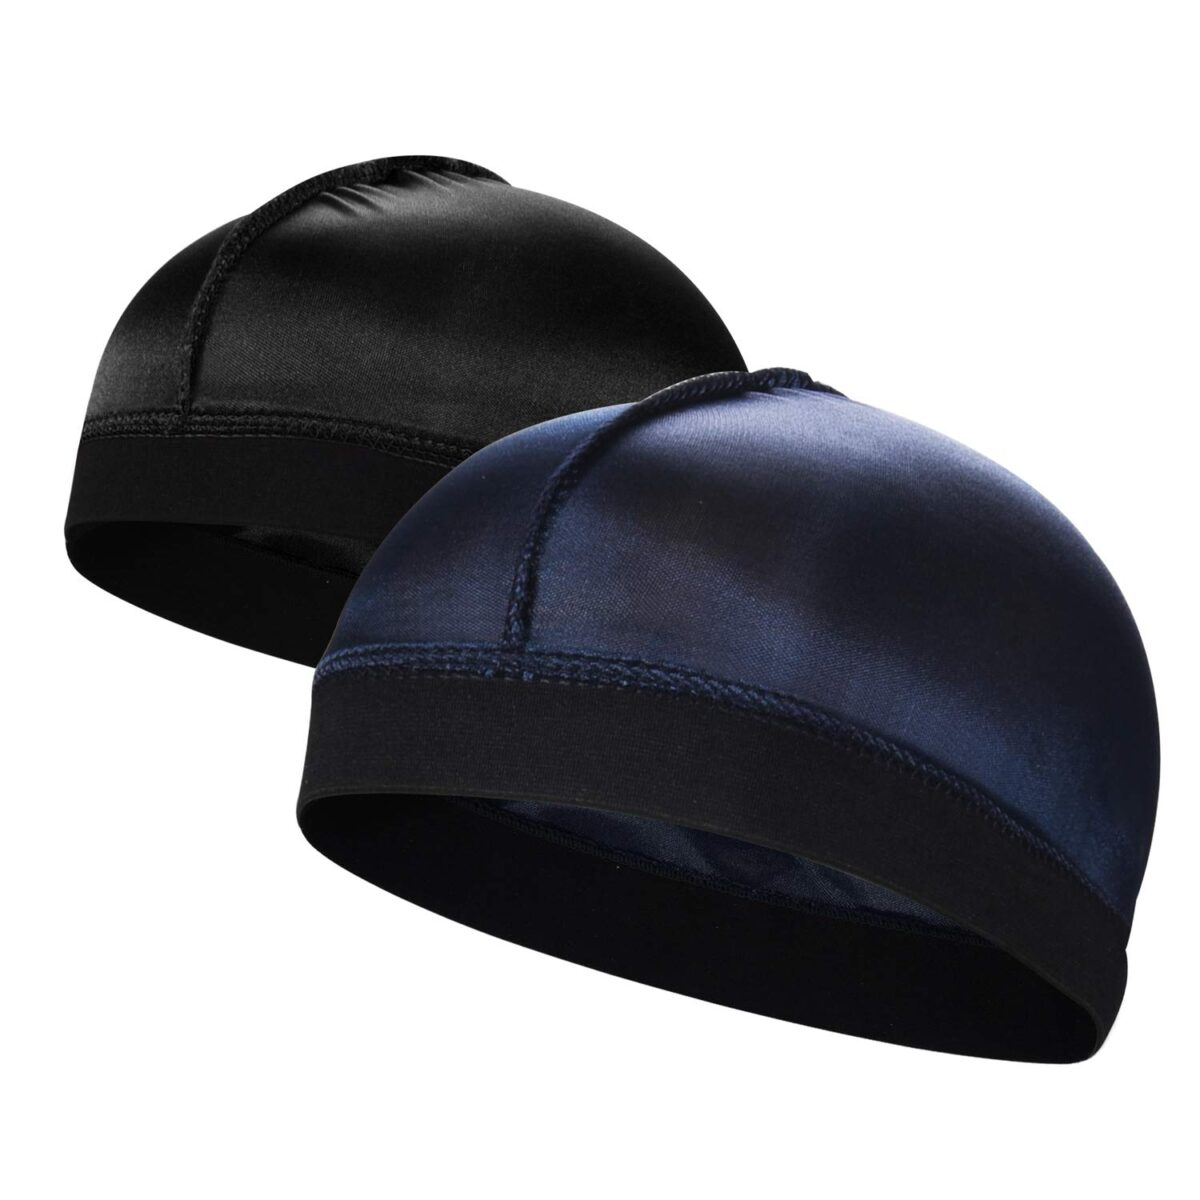 best silk wave cap for waves